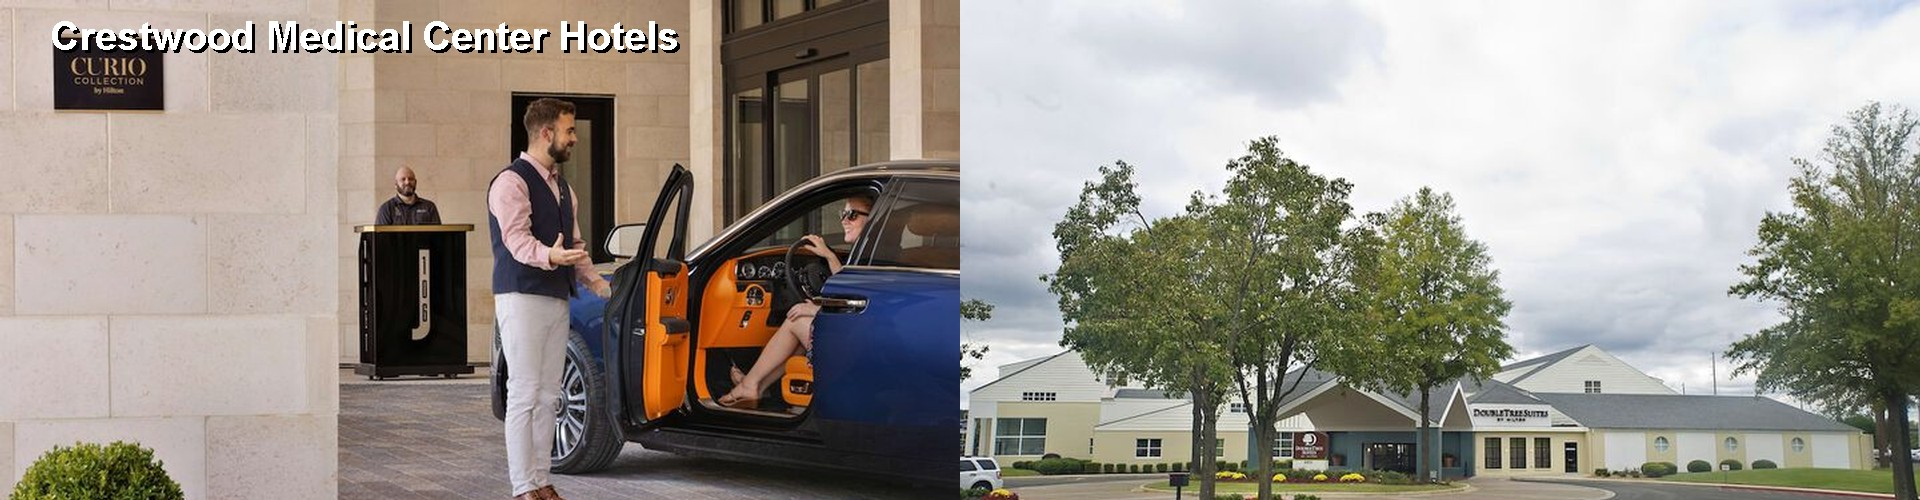 $39+ Hotels Near Crestwood Medical Center in Huntsville (AL)